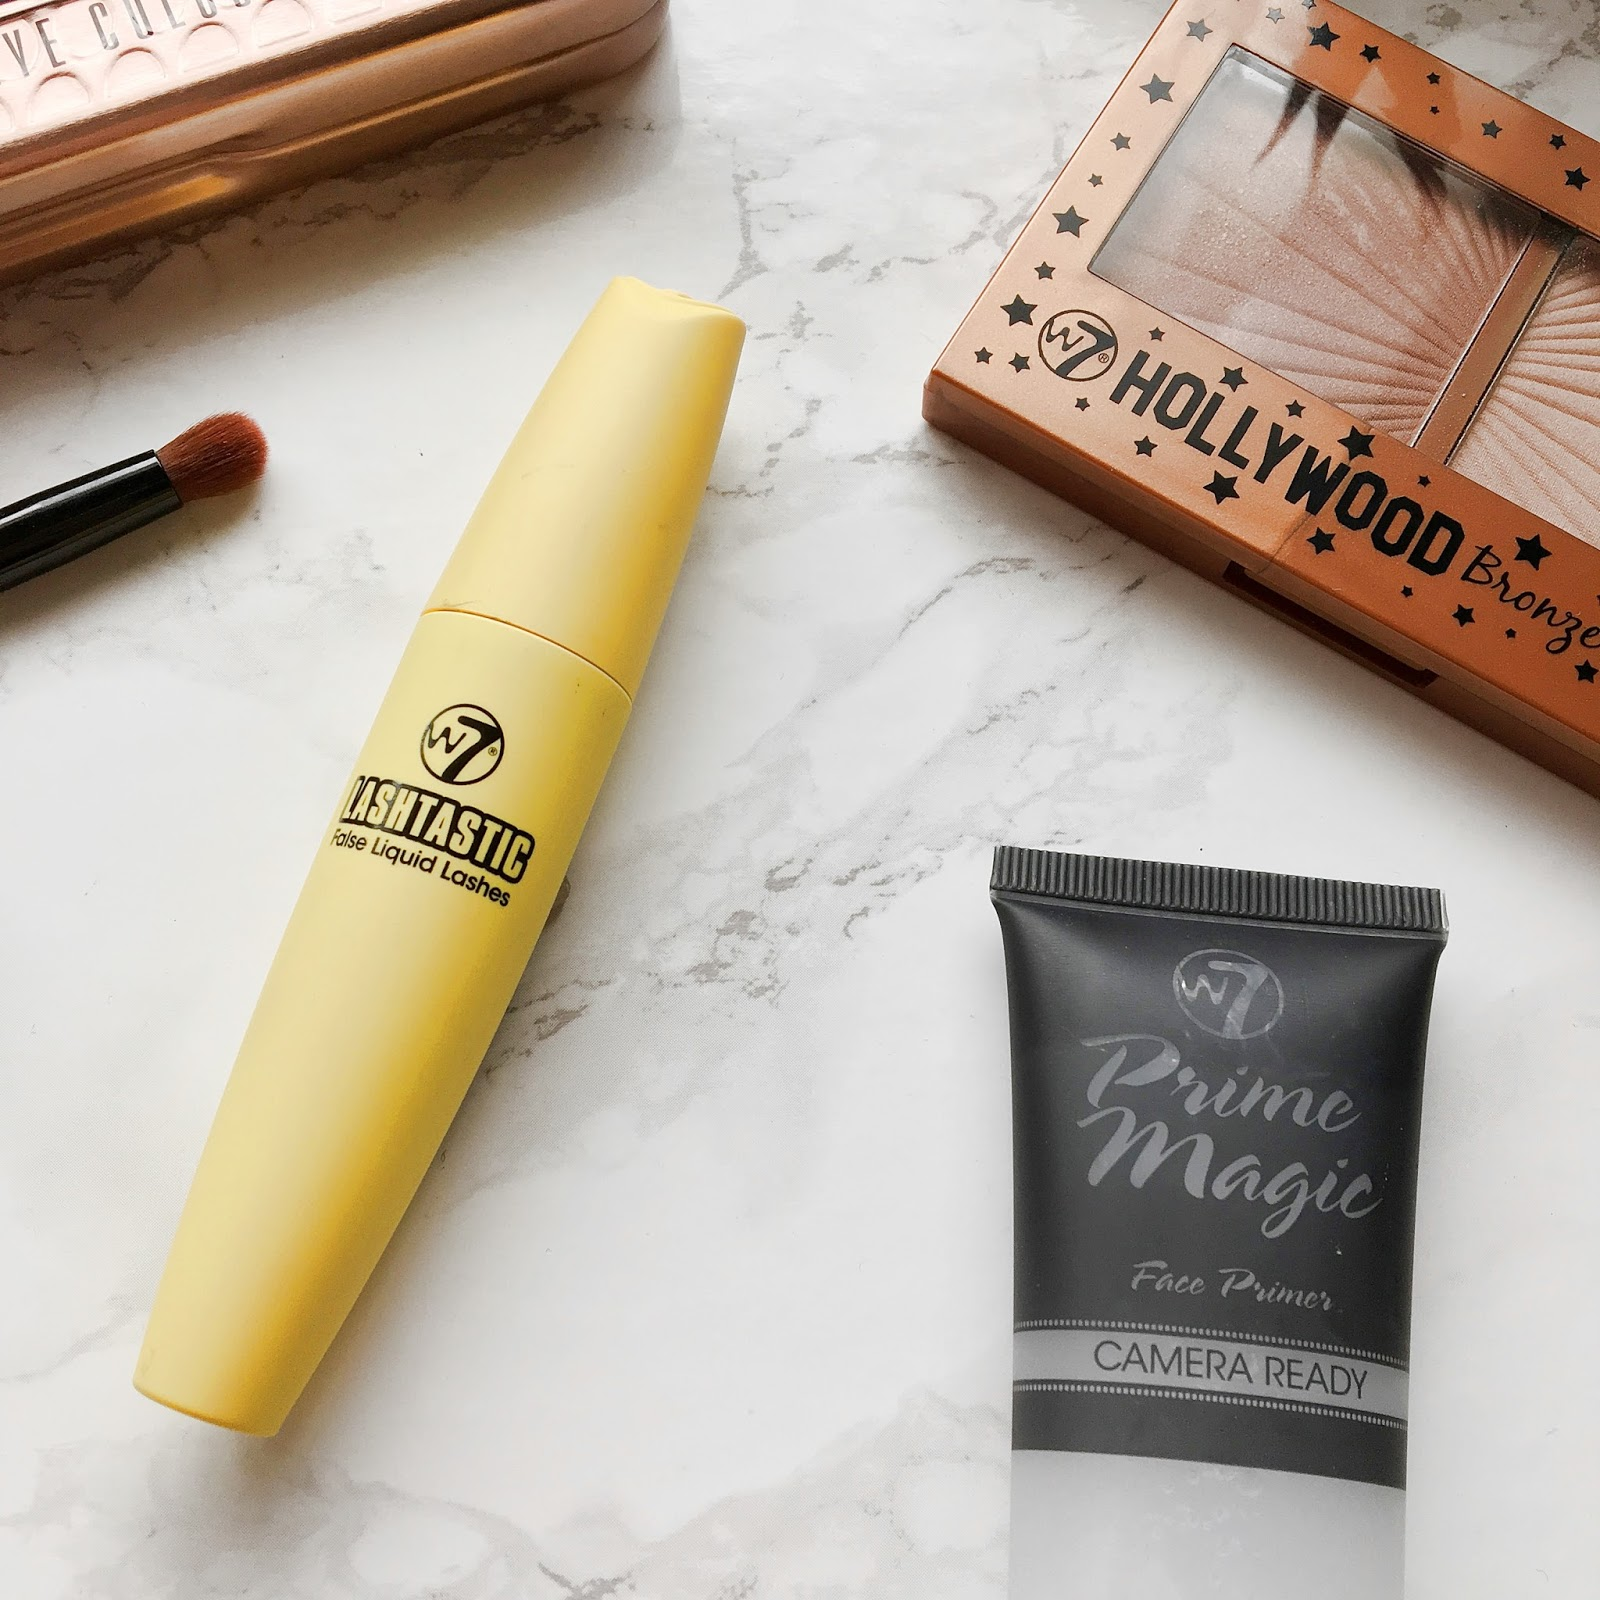 21372f308d5 I also picked up the Lashtastic False Liquid Lashes Mascara on Amazon after  reading so many good reviews about how this is better than Benefit  Rollerlash ...